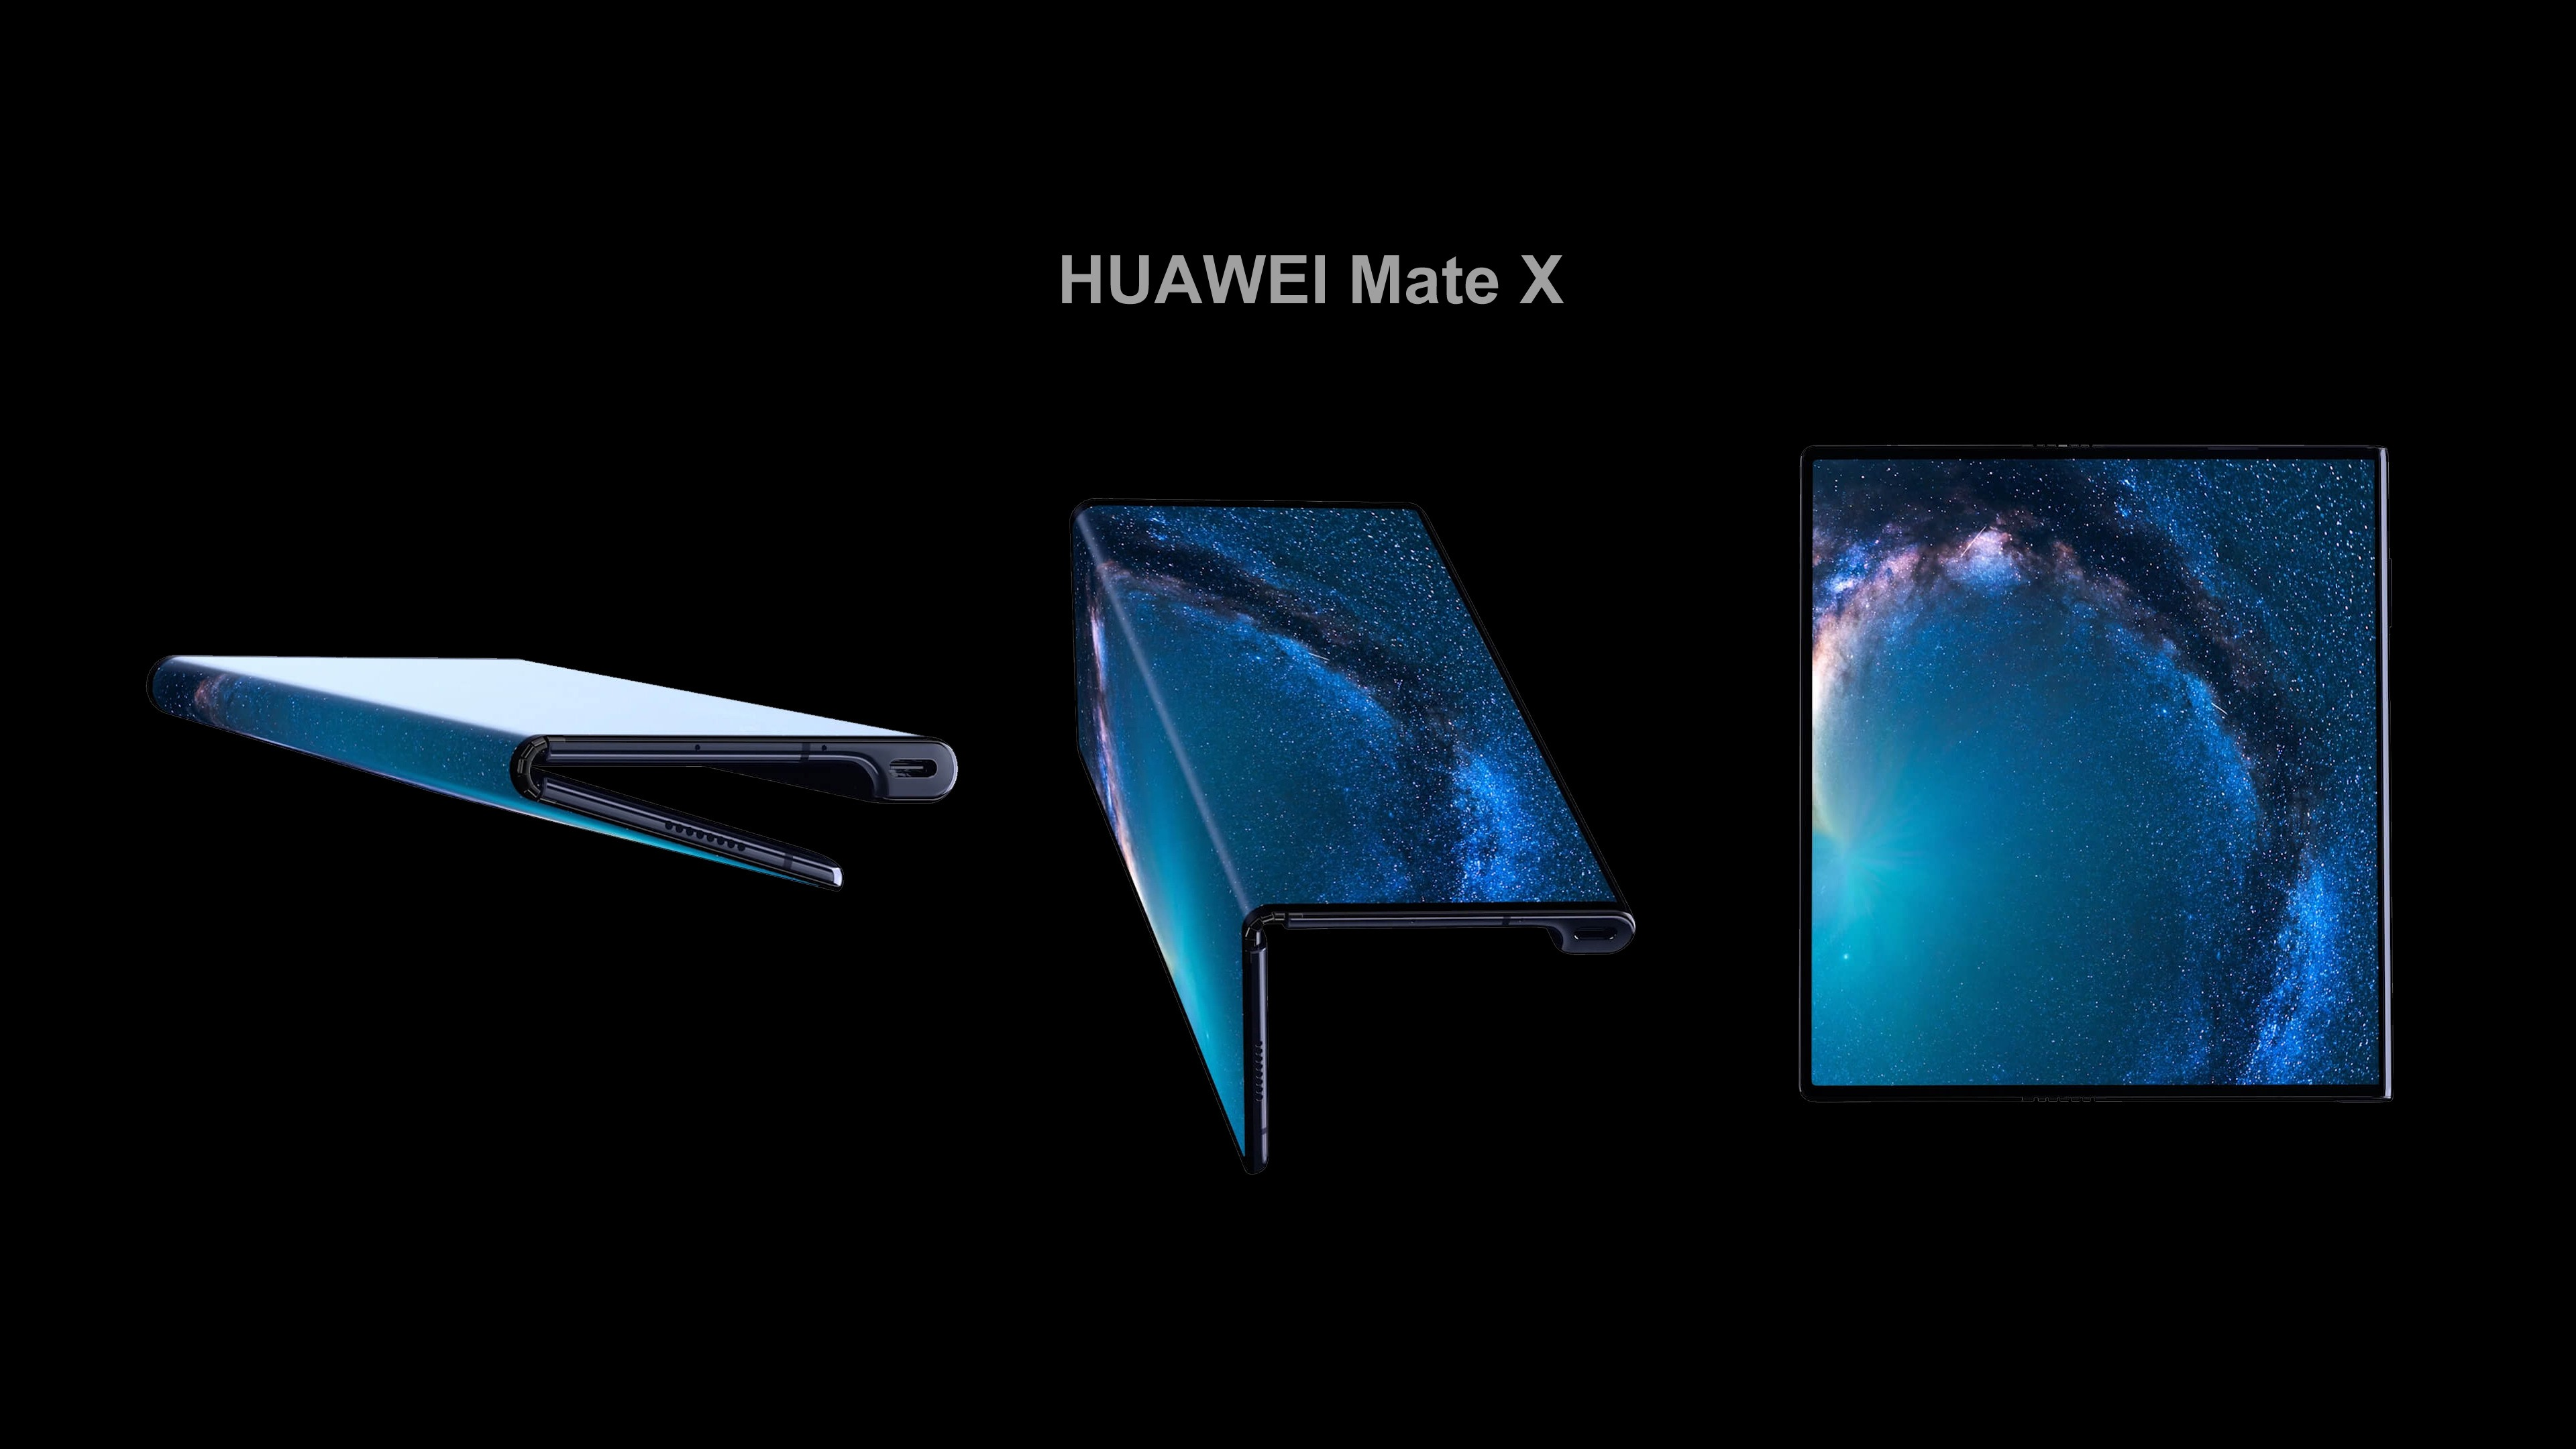 Wallpaper Huawei Mate X 5g Smartphone Can Bend And Stretch